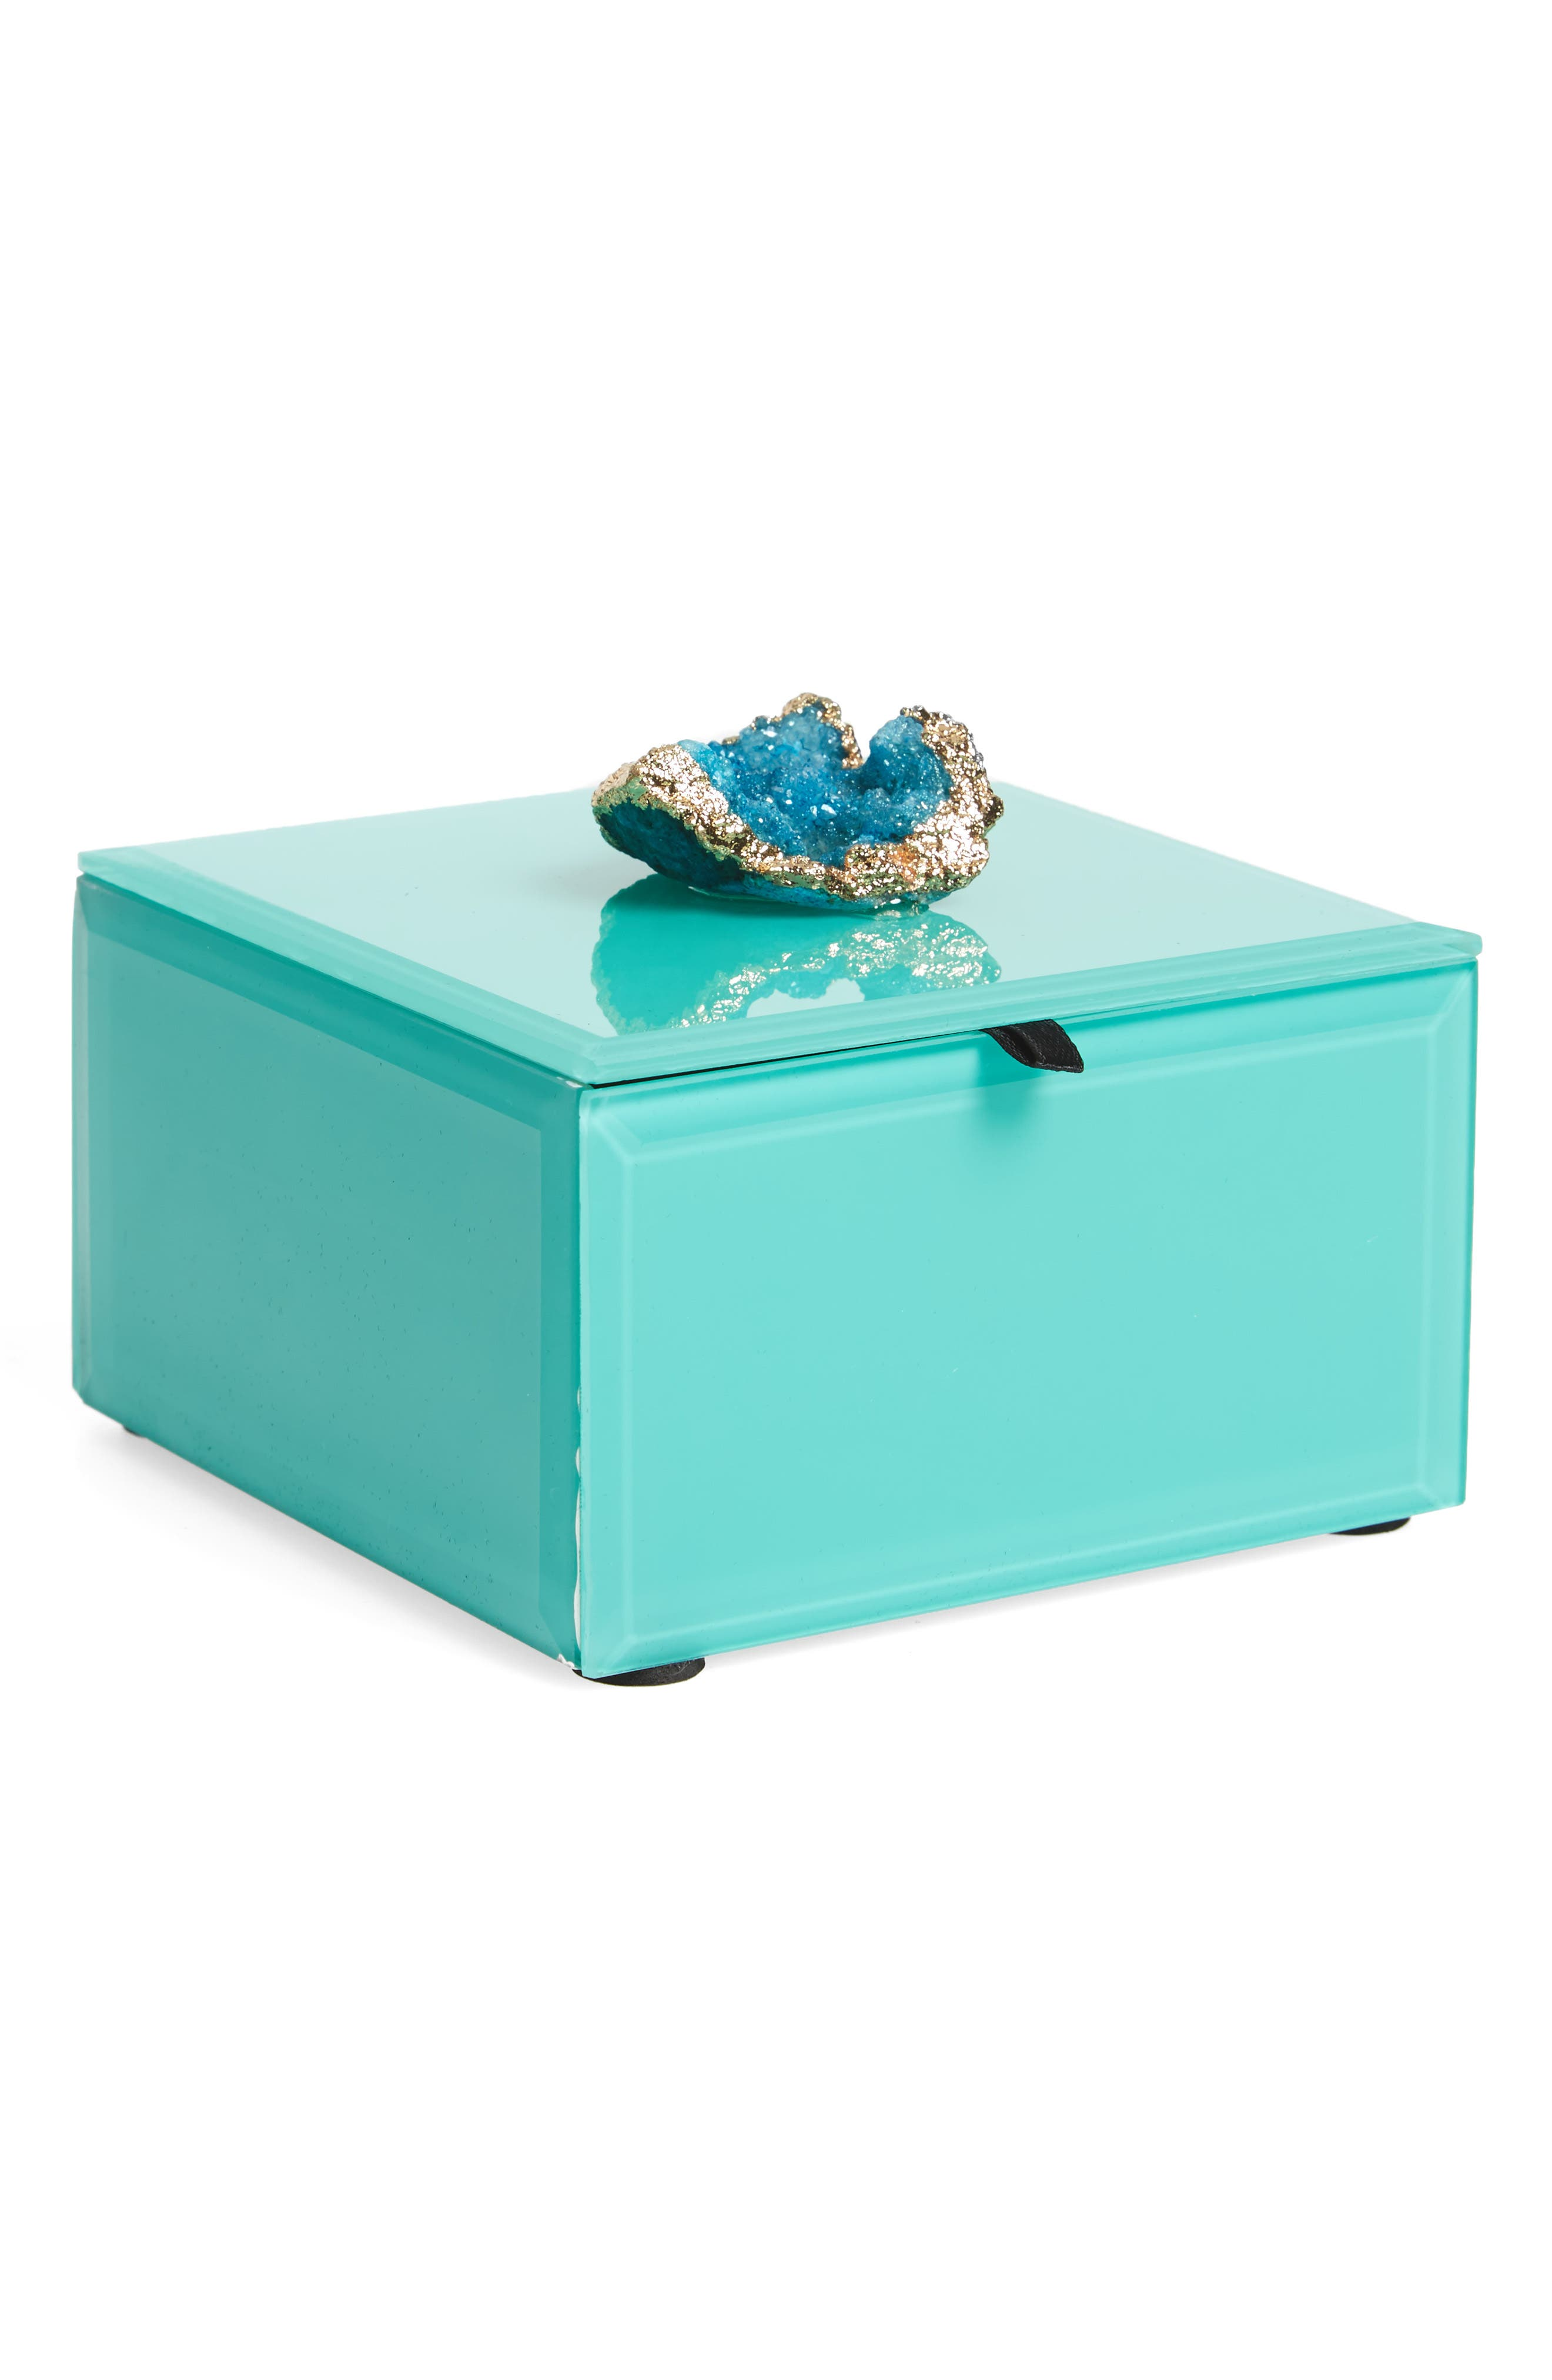 Peacock Agate Jewelry Box,                         Main,                         color, Peacock